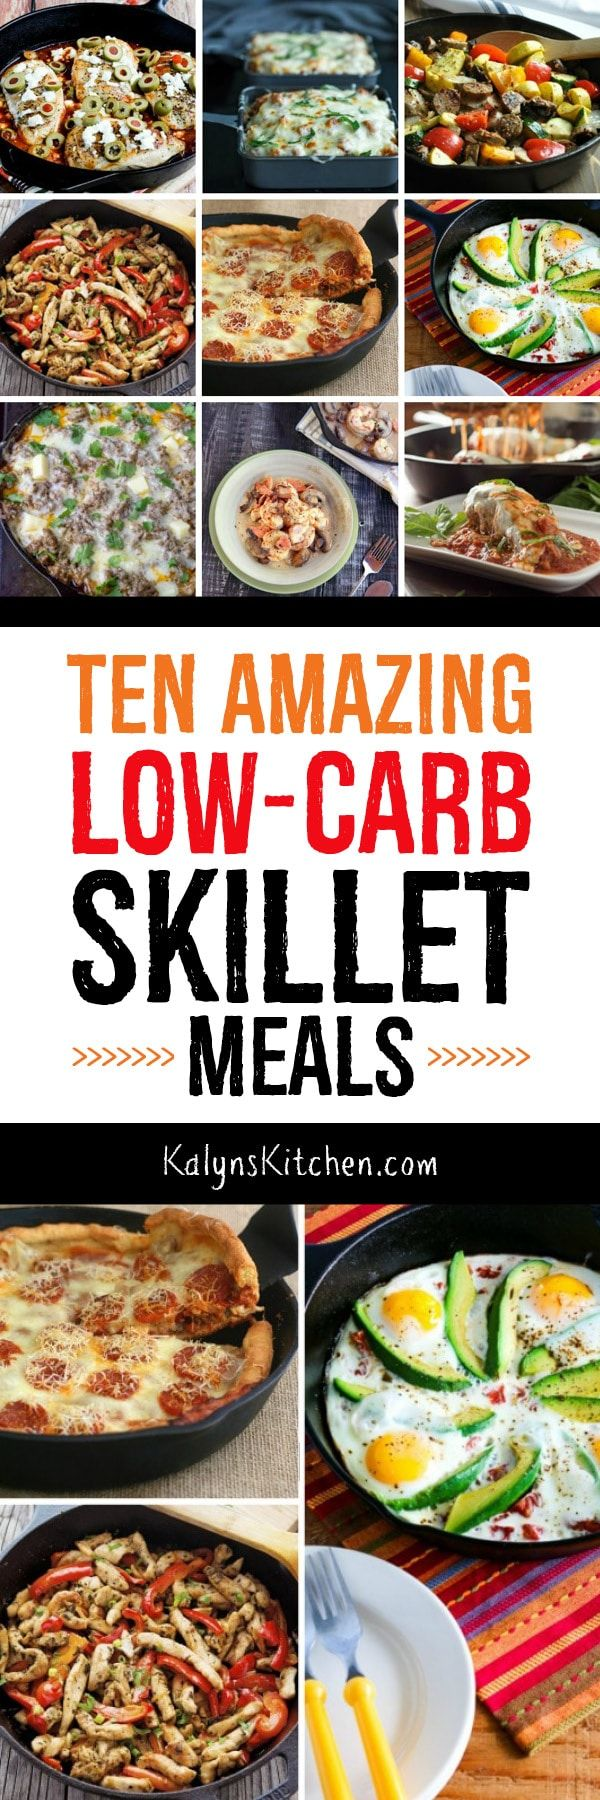 Who doesn't love a low-carb dinner that can be prepared with only one pan, so here are Ten Low-Carb Skillet Meals! You'll find delicious low-carb dinners here that you'll make over and over. [featured for Low-Carb Recipe Love on KalynsKitchen.com] #LowCarbRecipe #LowCarbDinner #LowCarbSkilletMeal #SkilletMeal #OnePanMeal